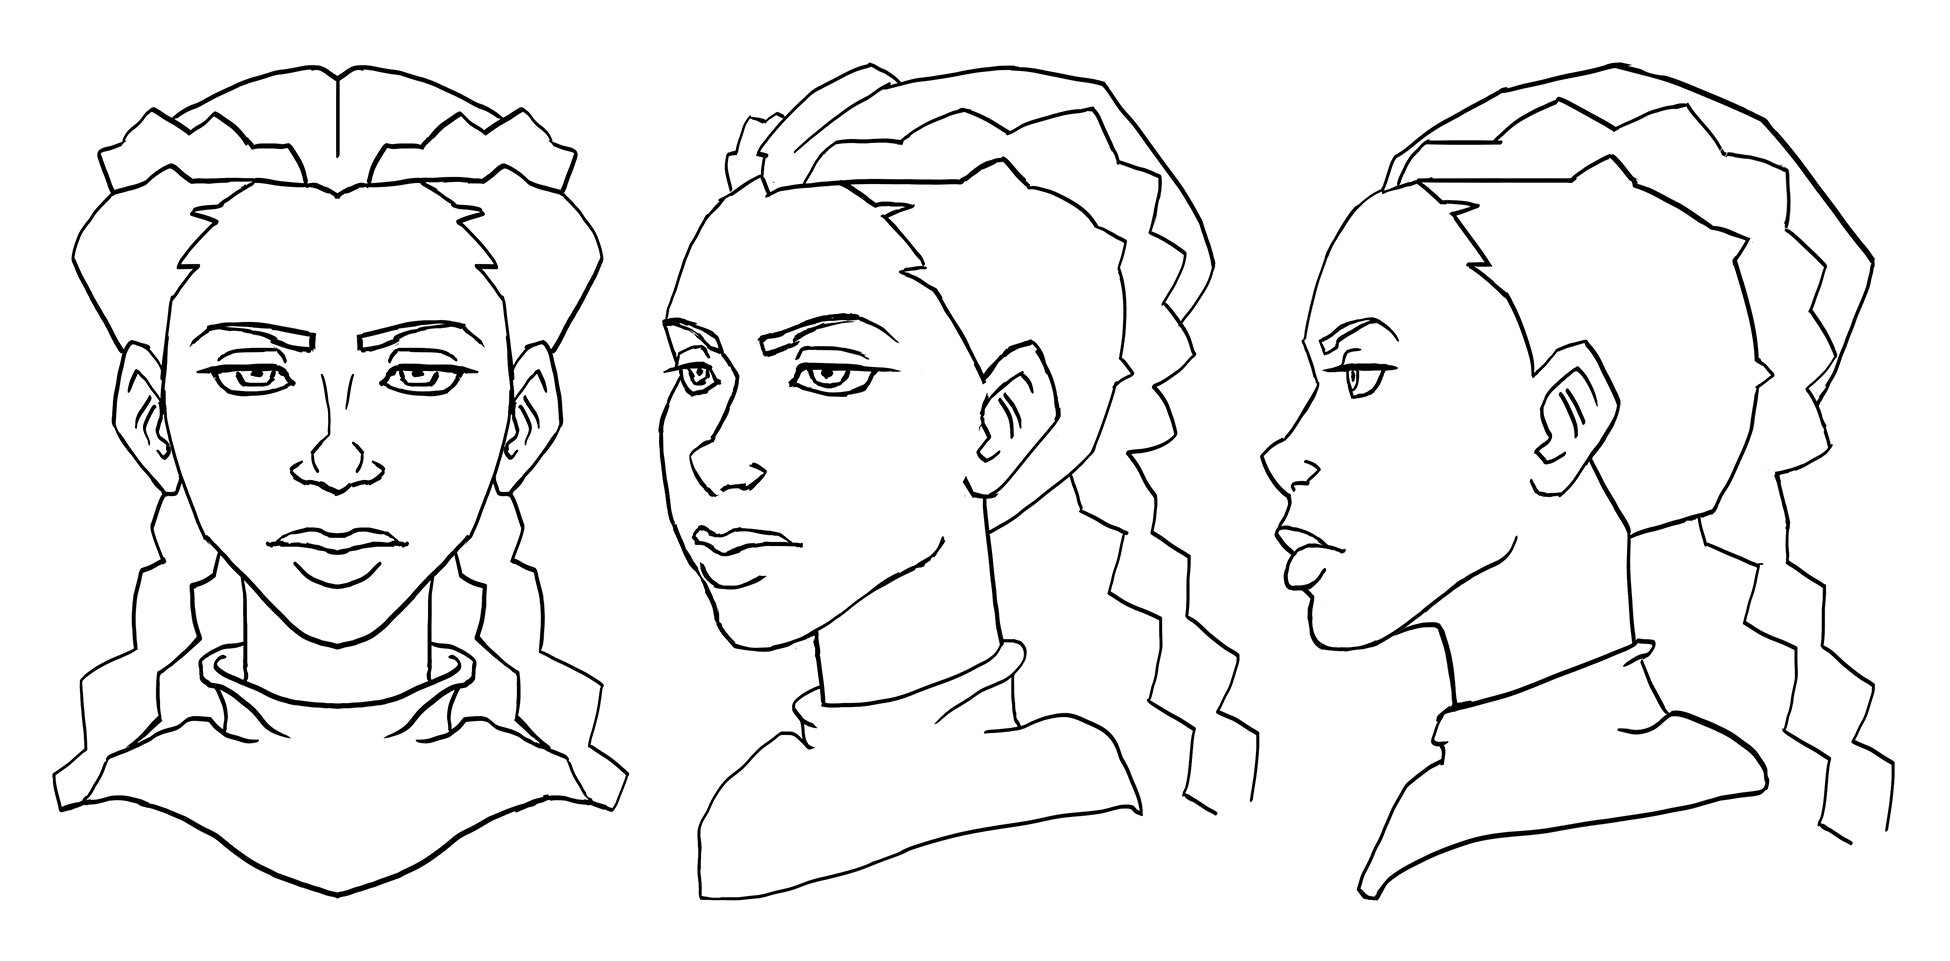 Kaylah turnaround for web.jpg